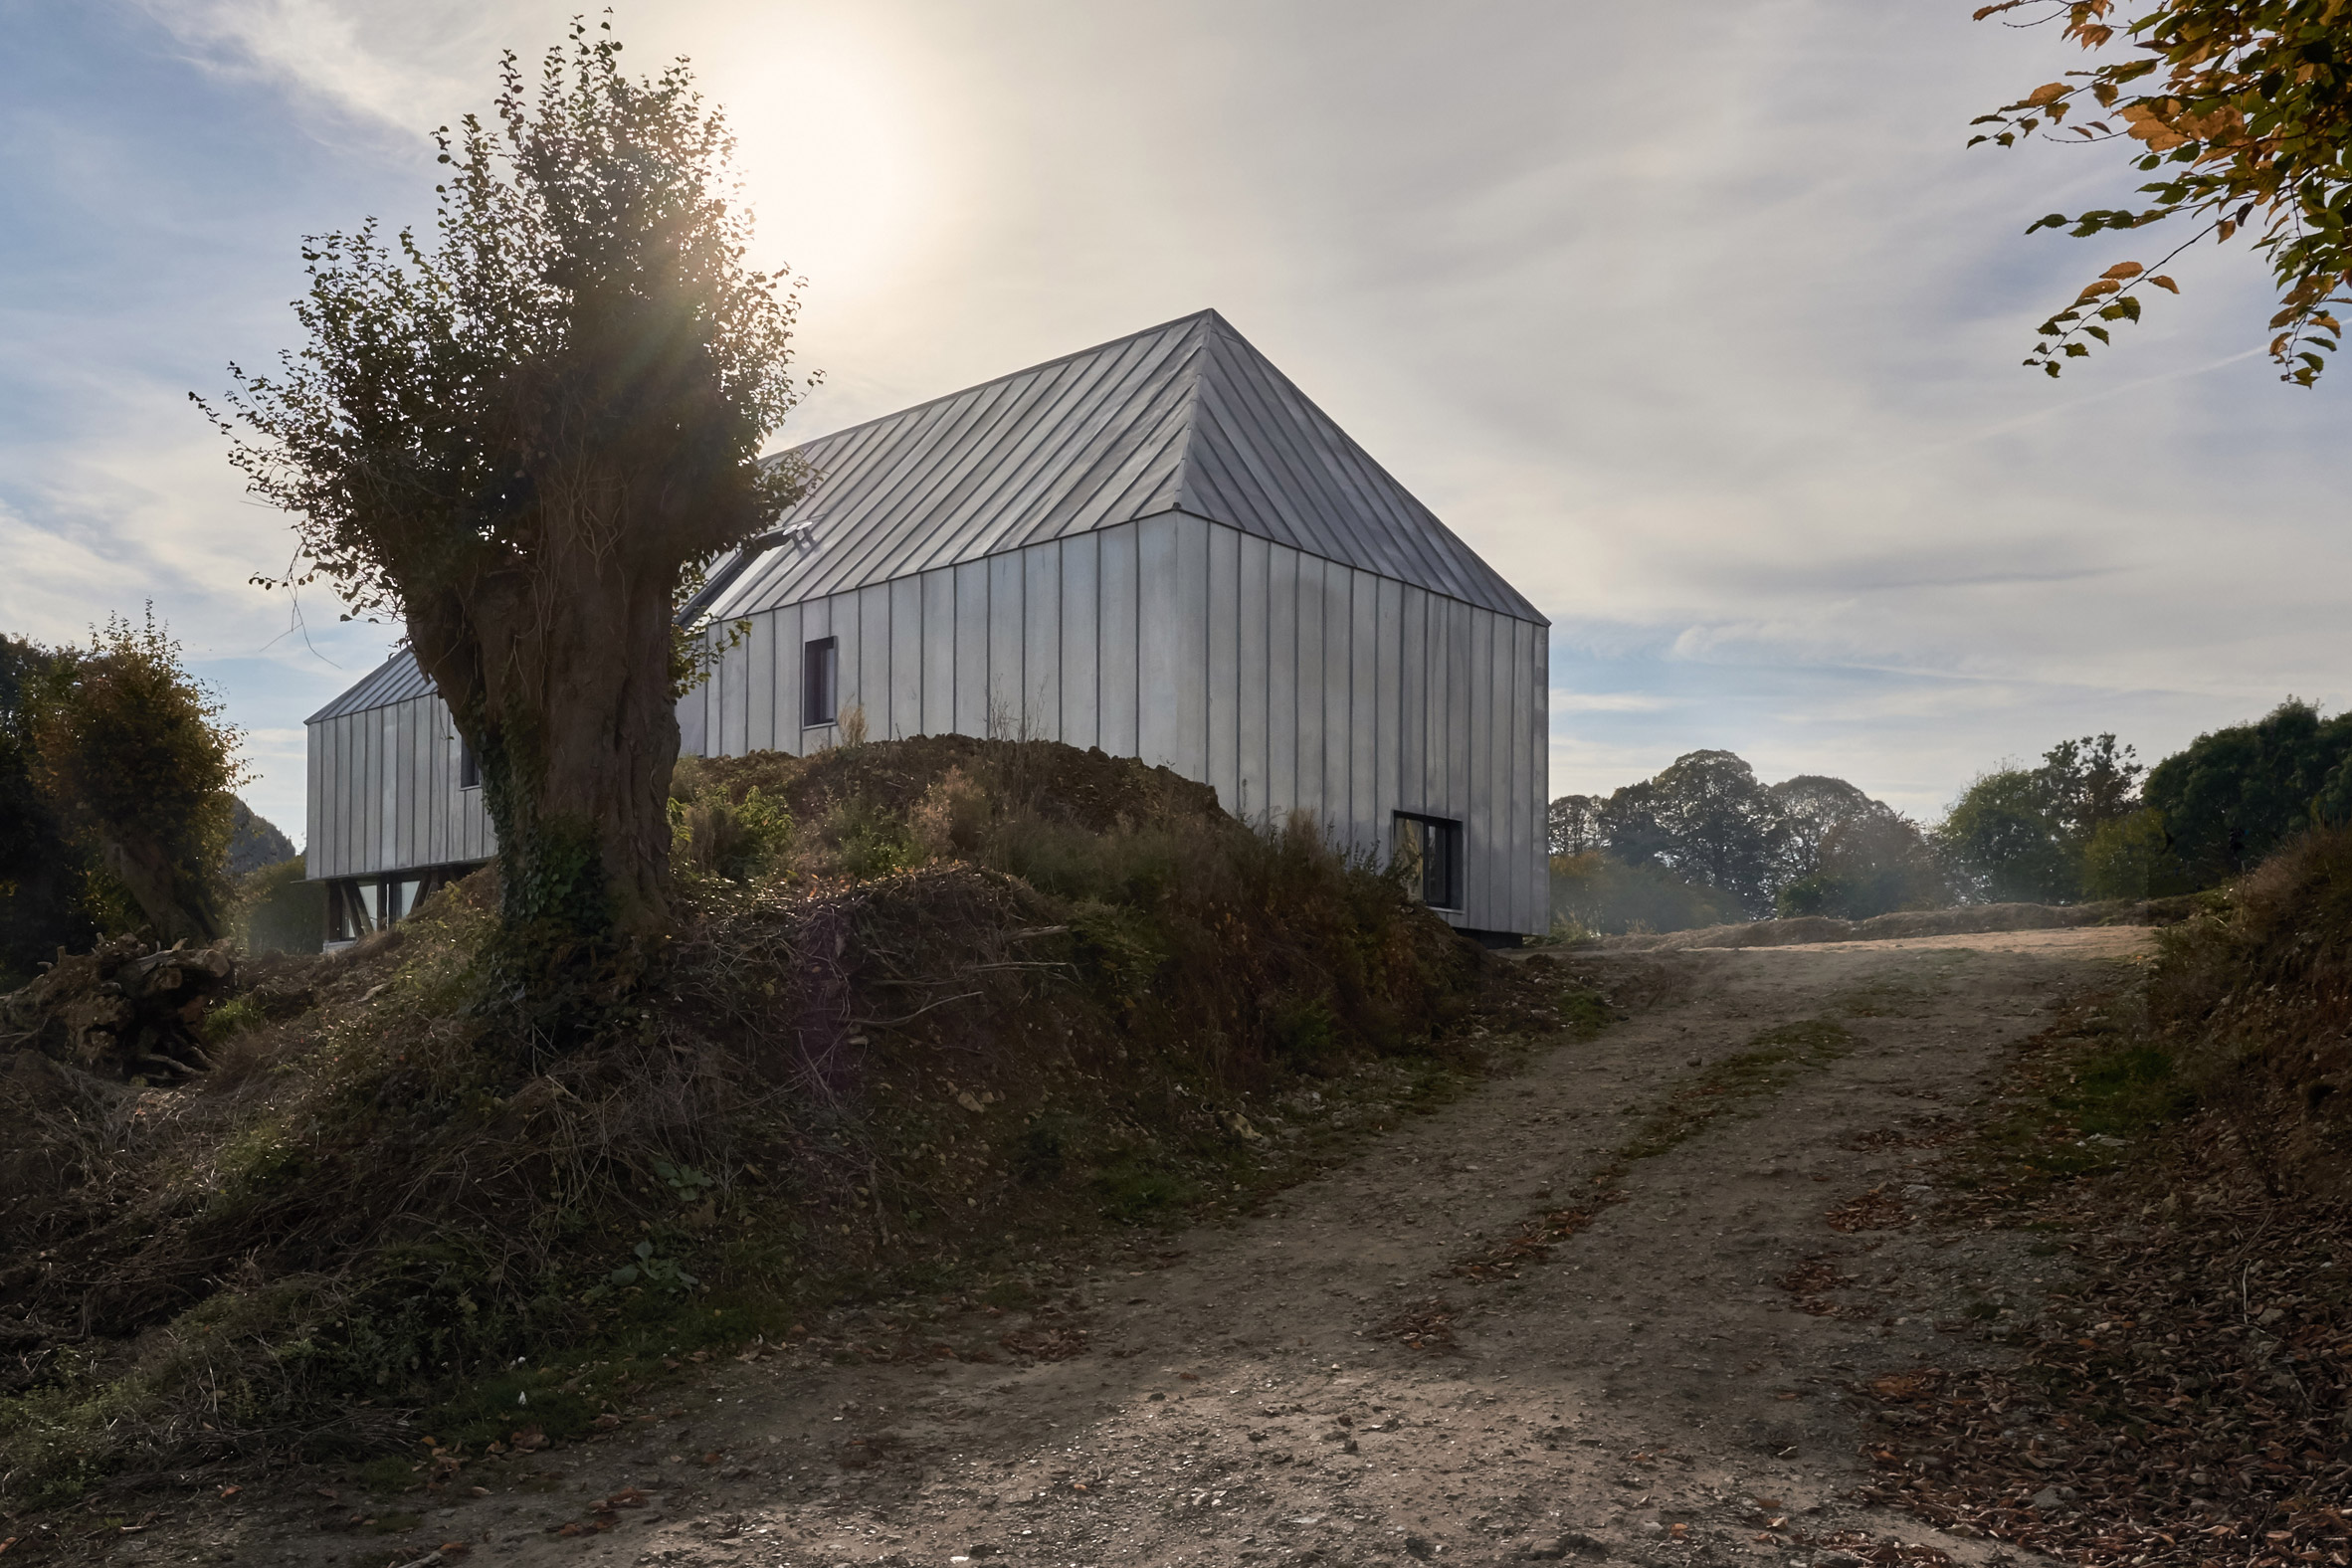 Antonin Ziegler covers abandoned barn in zinc plates to create rustic home in northern France